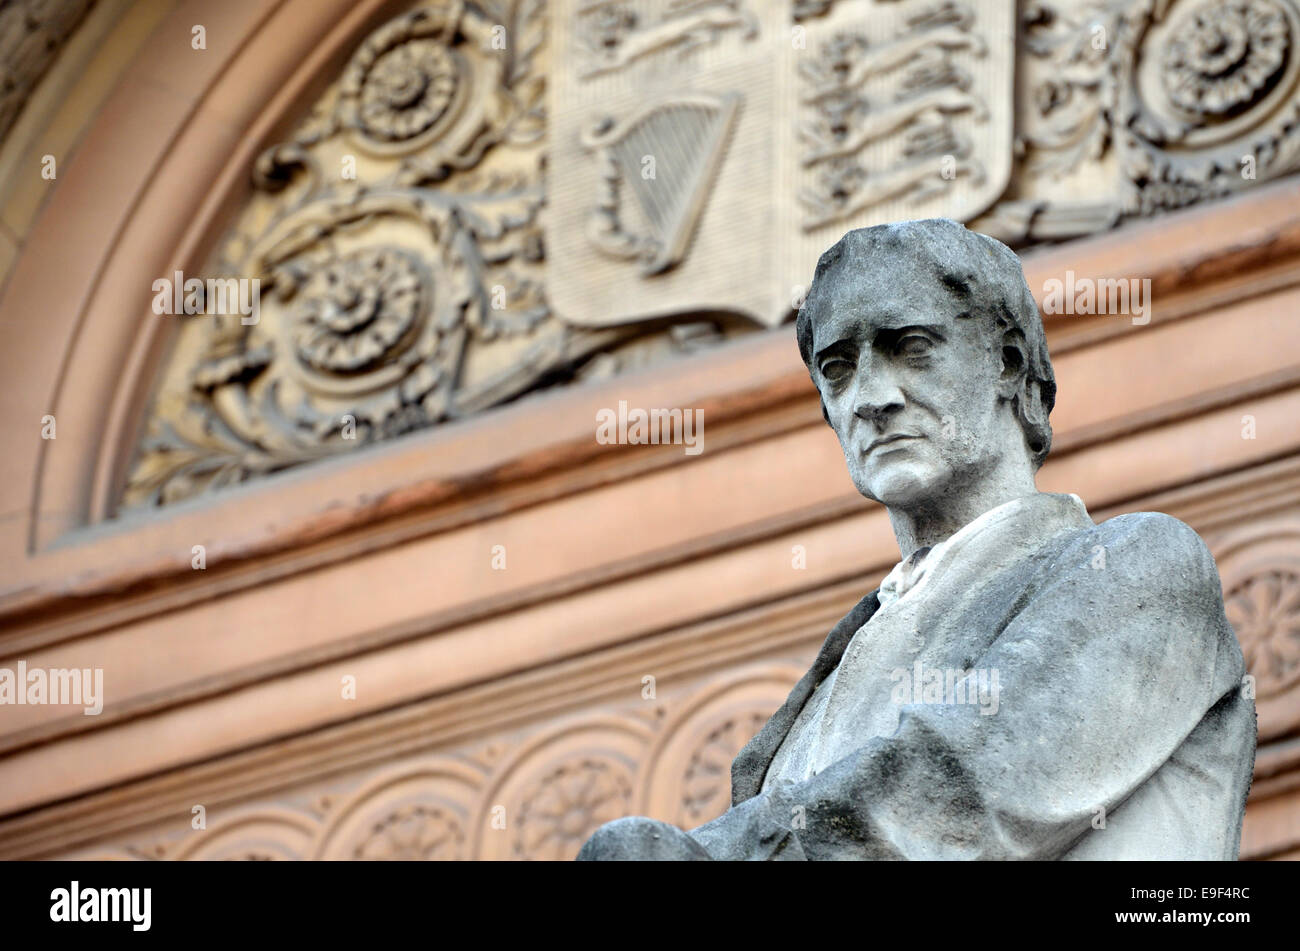 London, England, UK. Statue on facade of No 6 Burlington Gardens (Royal Academy / Burlington House) Sir Isaac Newton - Stock Image